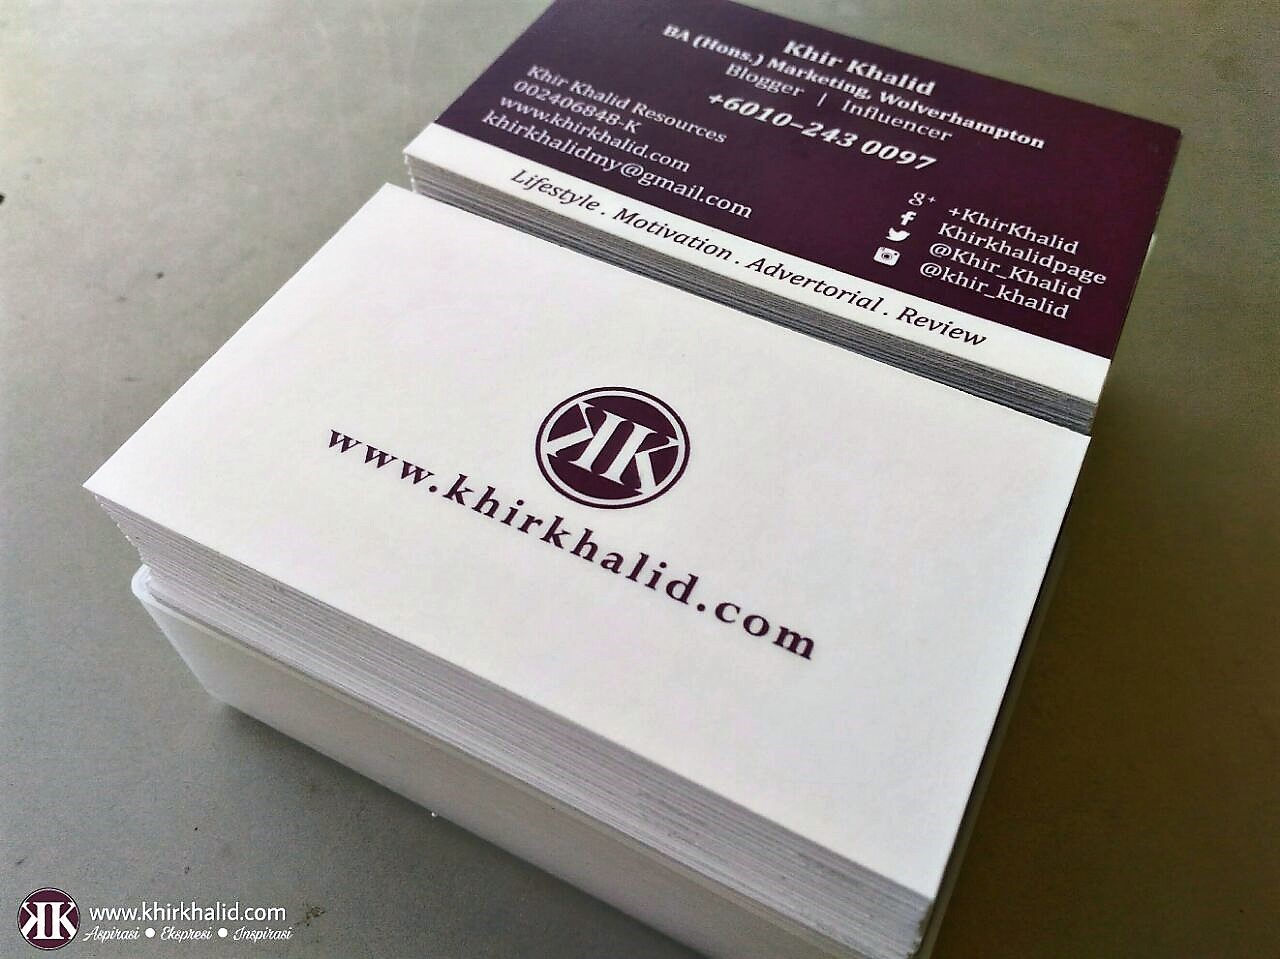 Business cards in killeen tx gallery card design and card template business cards killeen tx images card design and card template business cards killeen tx images card reheart Images